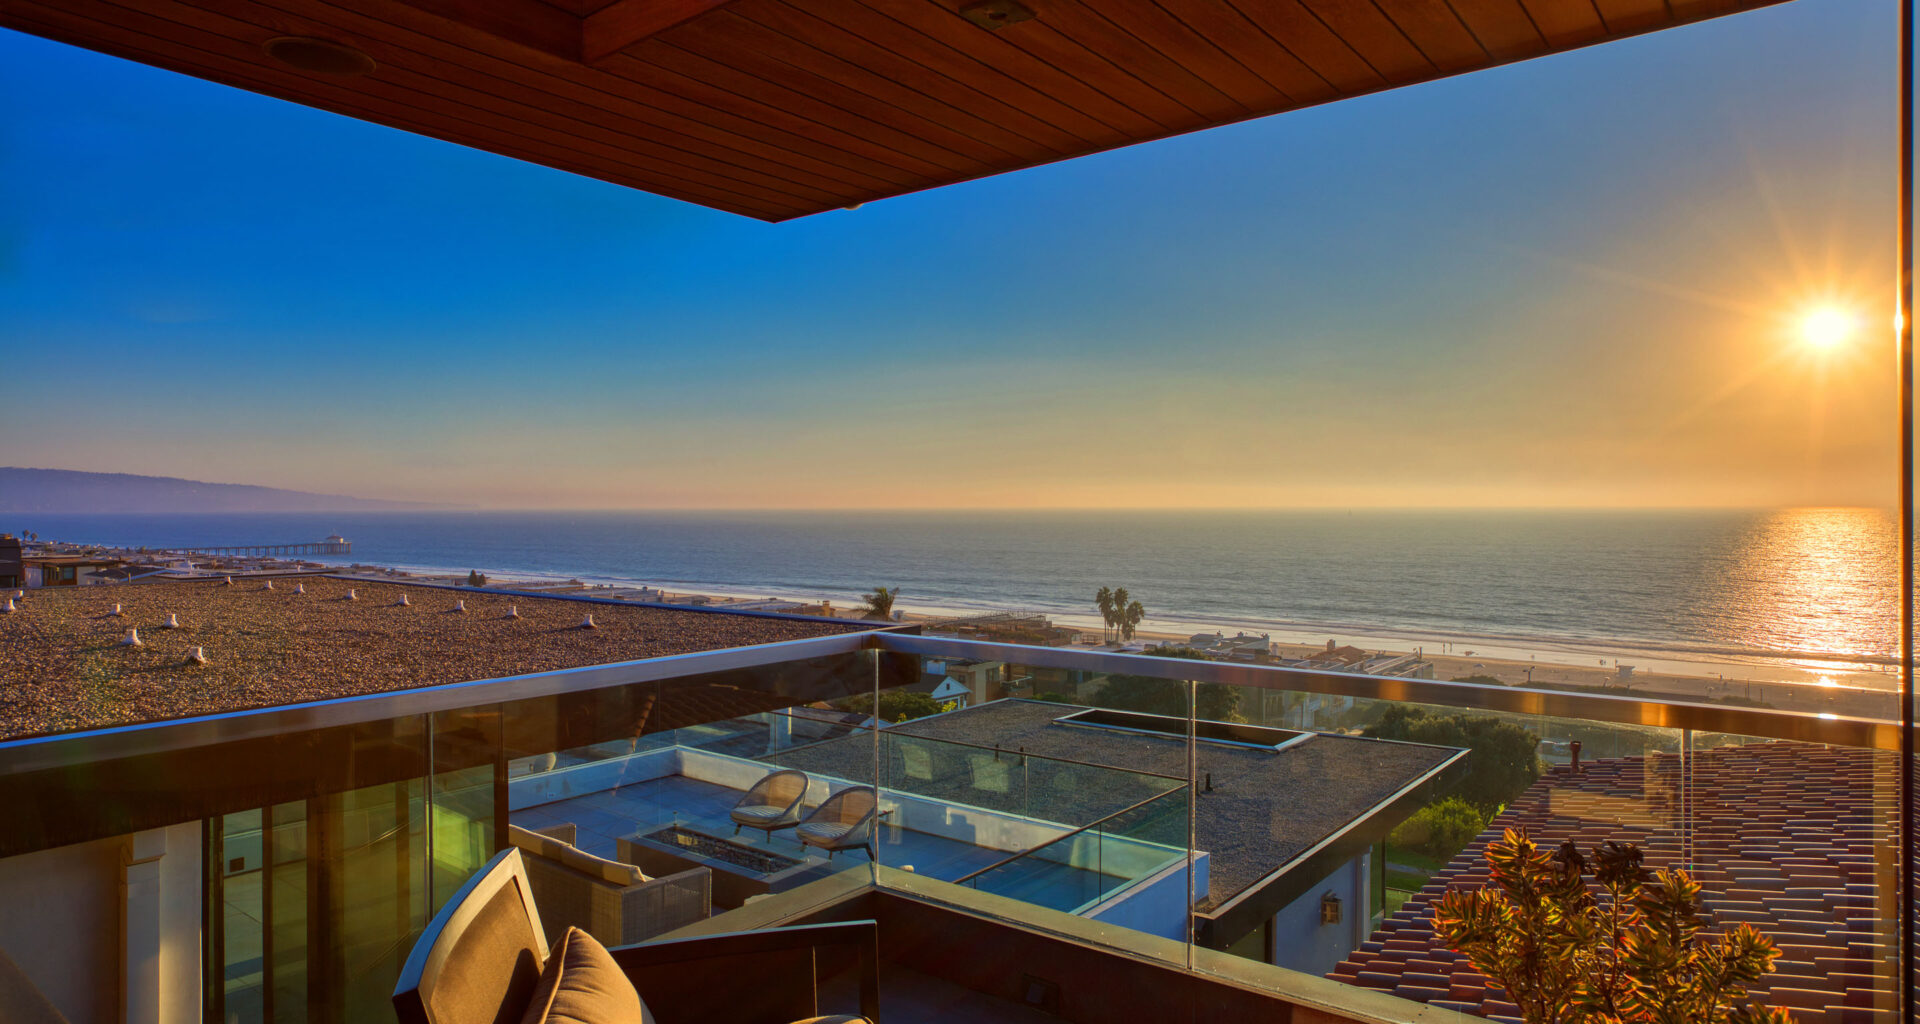 2615 Crest Drive, 2615 Crest Dr, Manhattan Beach, CA, 90266, Lauren Forbes, John Corrales, Forbes Corrales, Compass, Paul Jonason, ocean view, oceanview, views, pacific ocean, Michael Lee, Cumaru, hardwood, David James